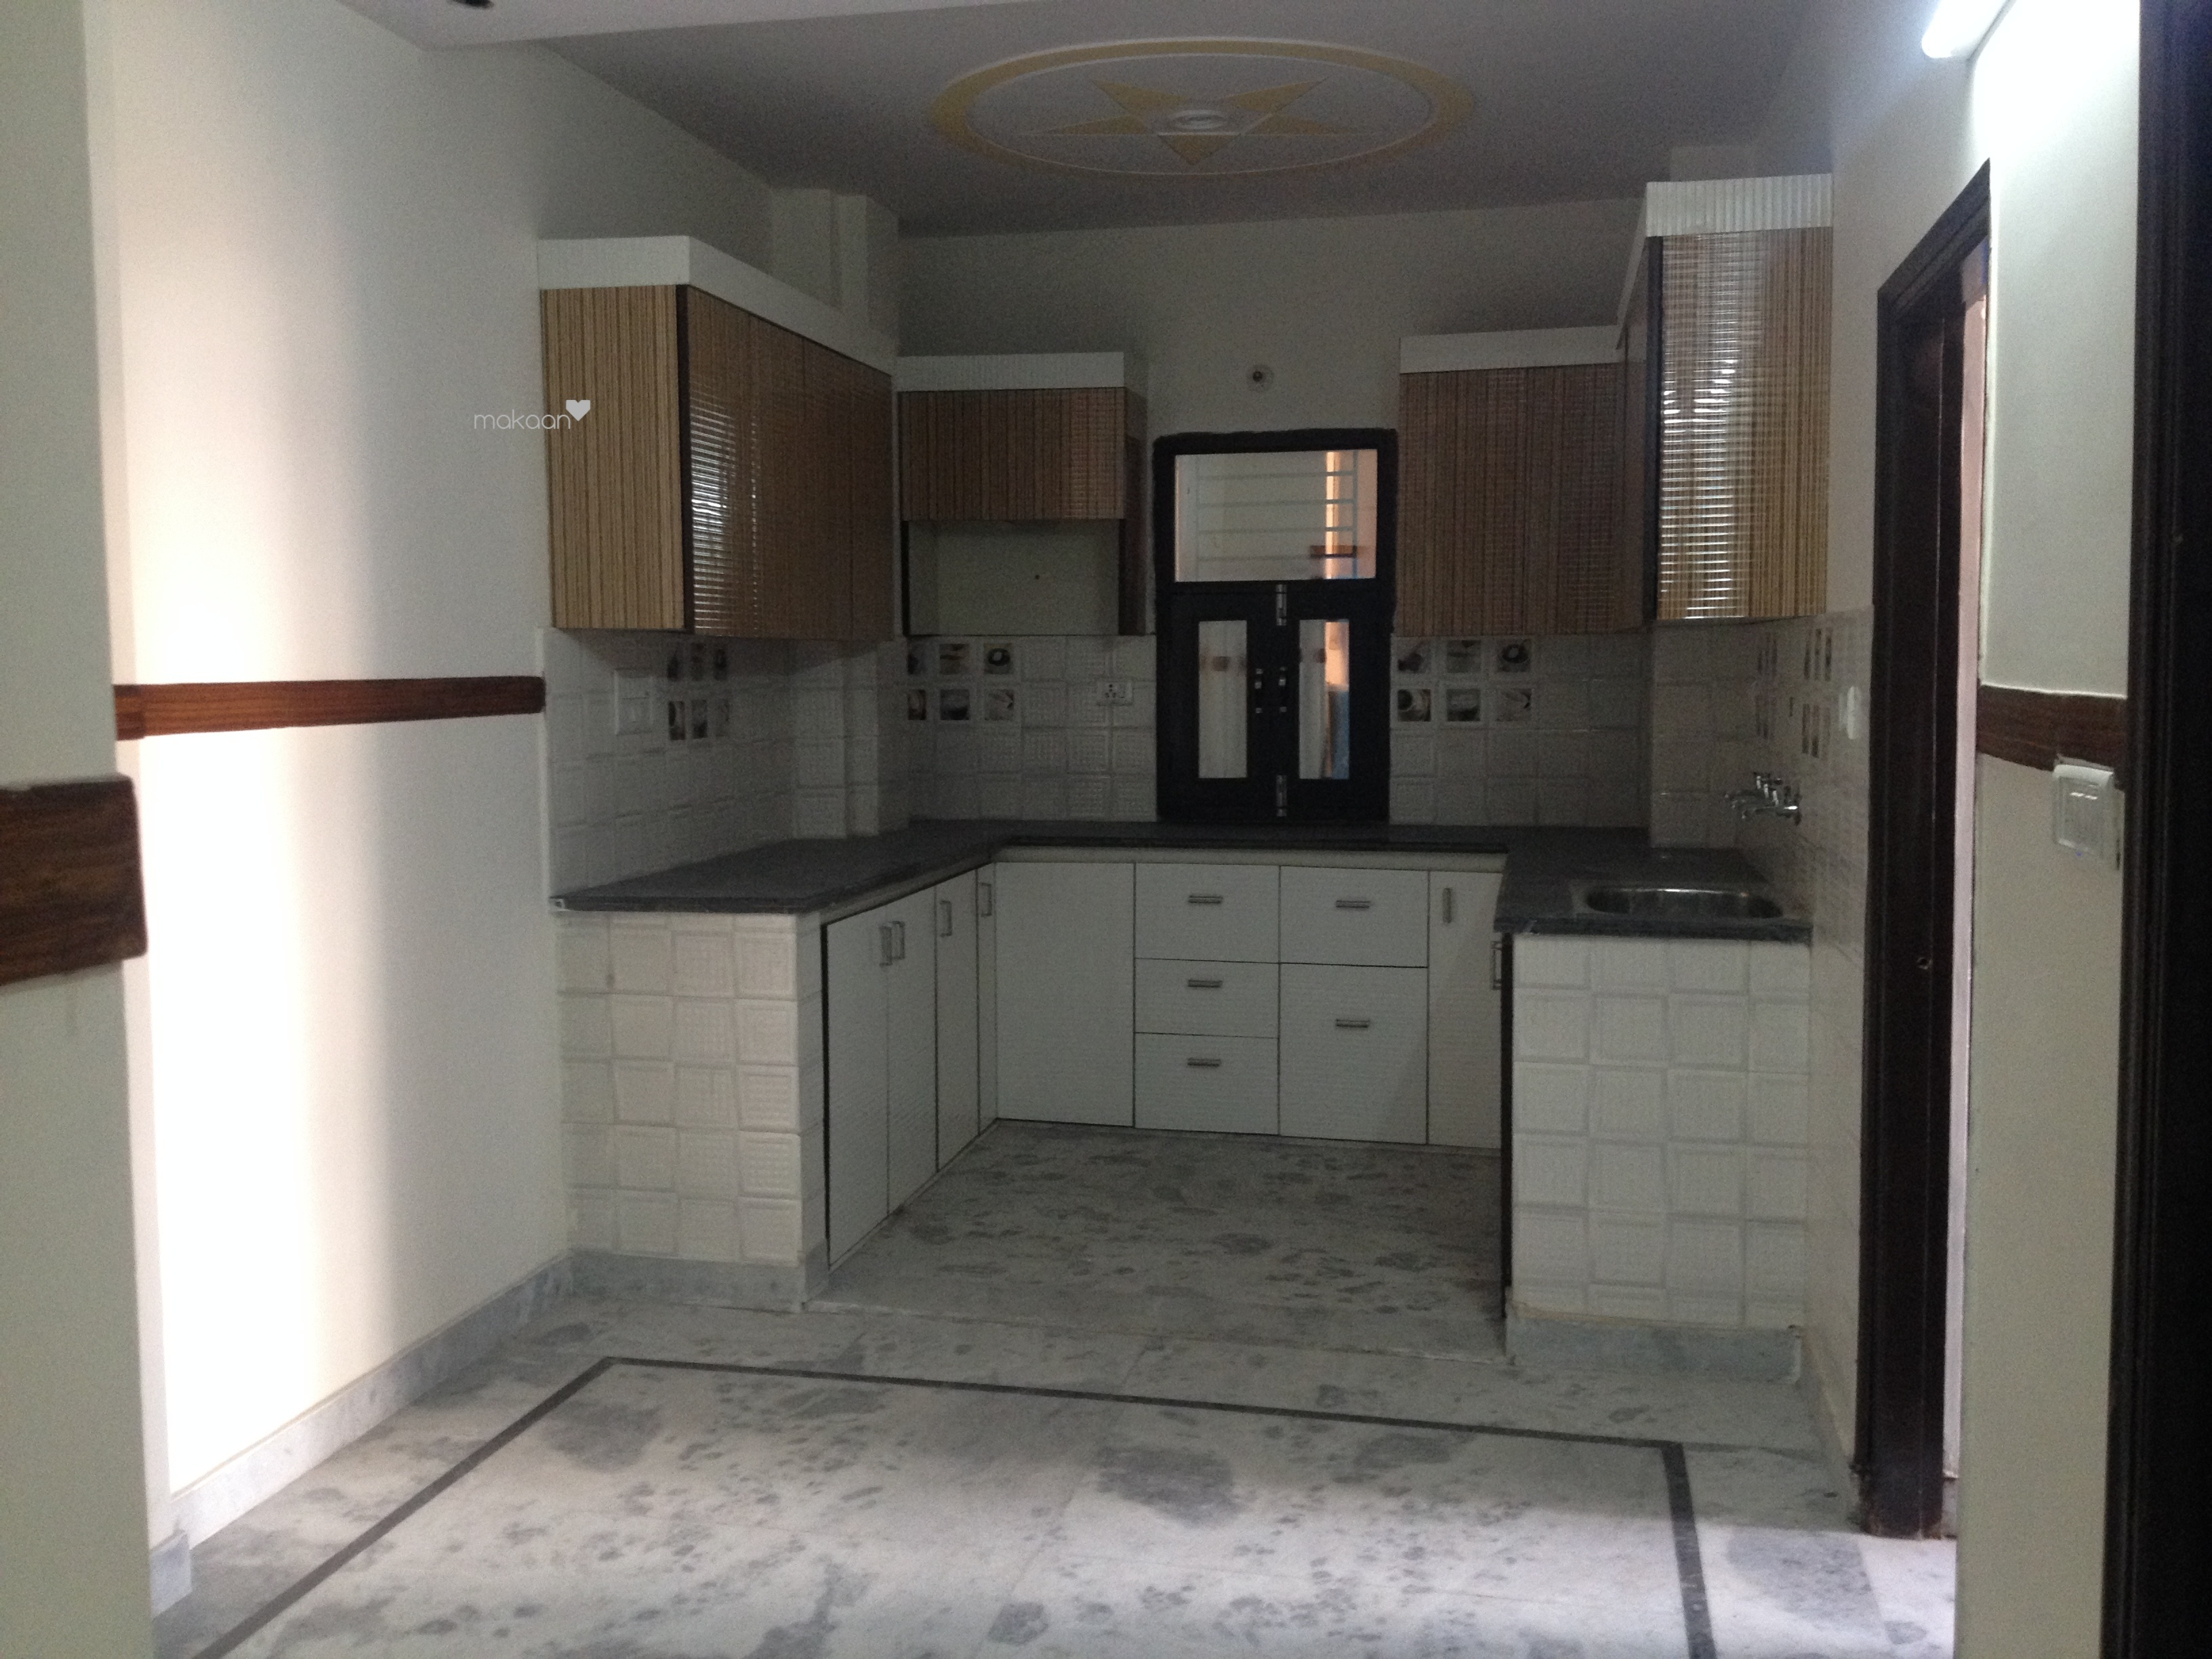 855 sq ft 3BHK 3BHK+2T (855 sq ft) Property By Global Real Estate In globe homes, param puri